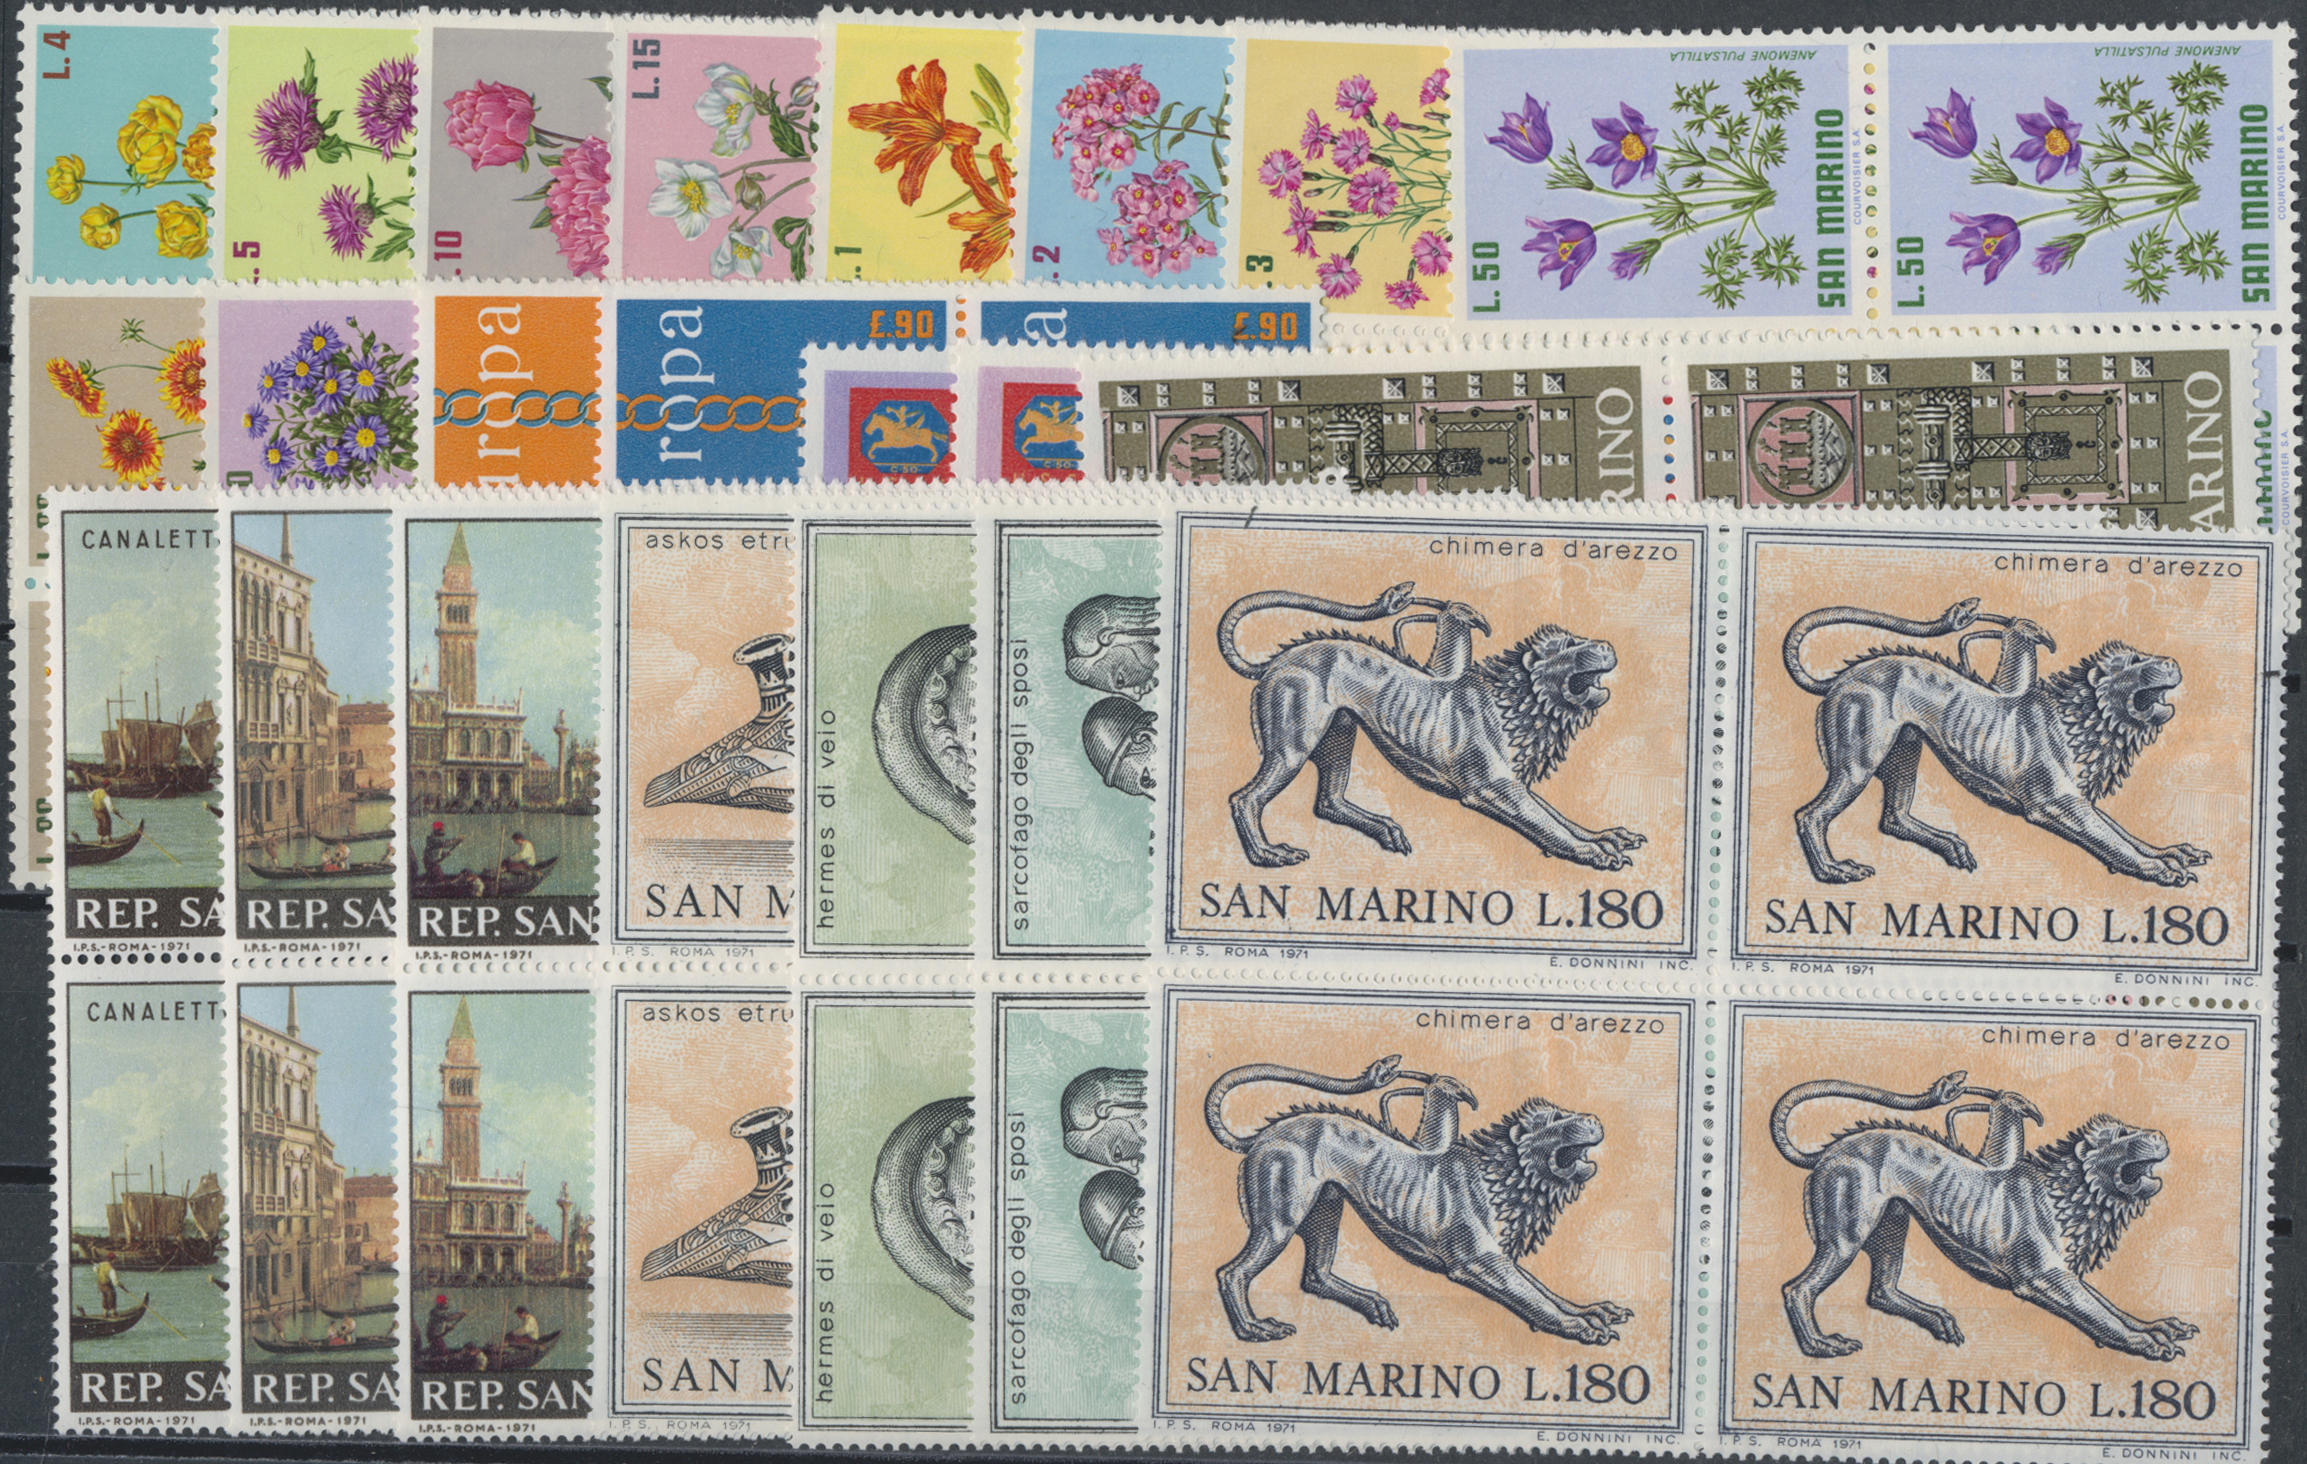 Lot 35034 - San Marino  -  Auktionshaus Christoph Gärtner GmbH & Co. KG Sale #44 Collections Germany